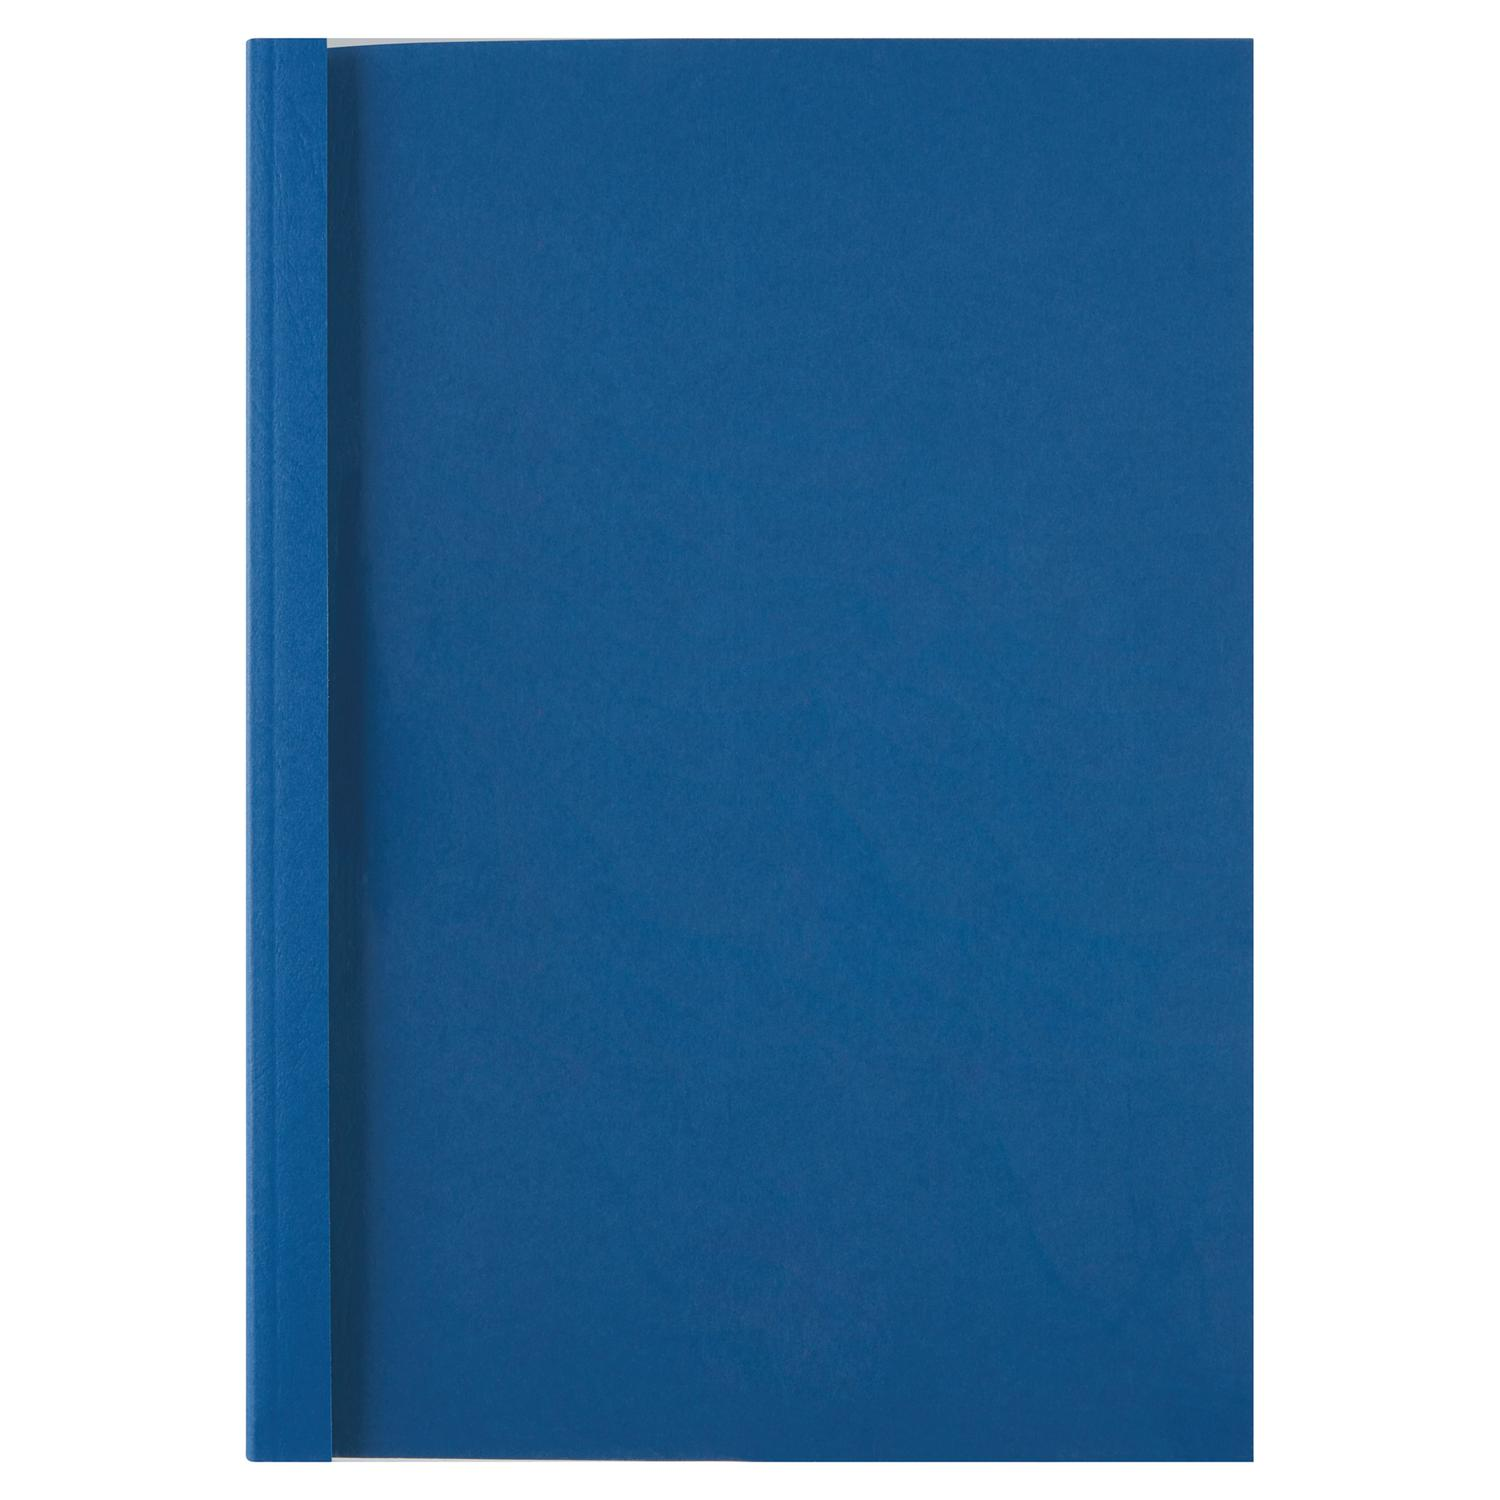 GBC A4 Thermal Binding Covers 3mm Royal Blue PK1000